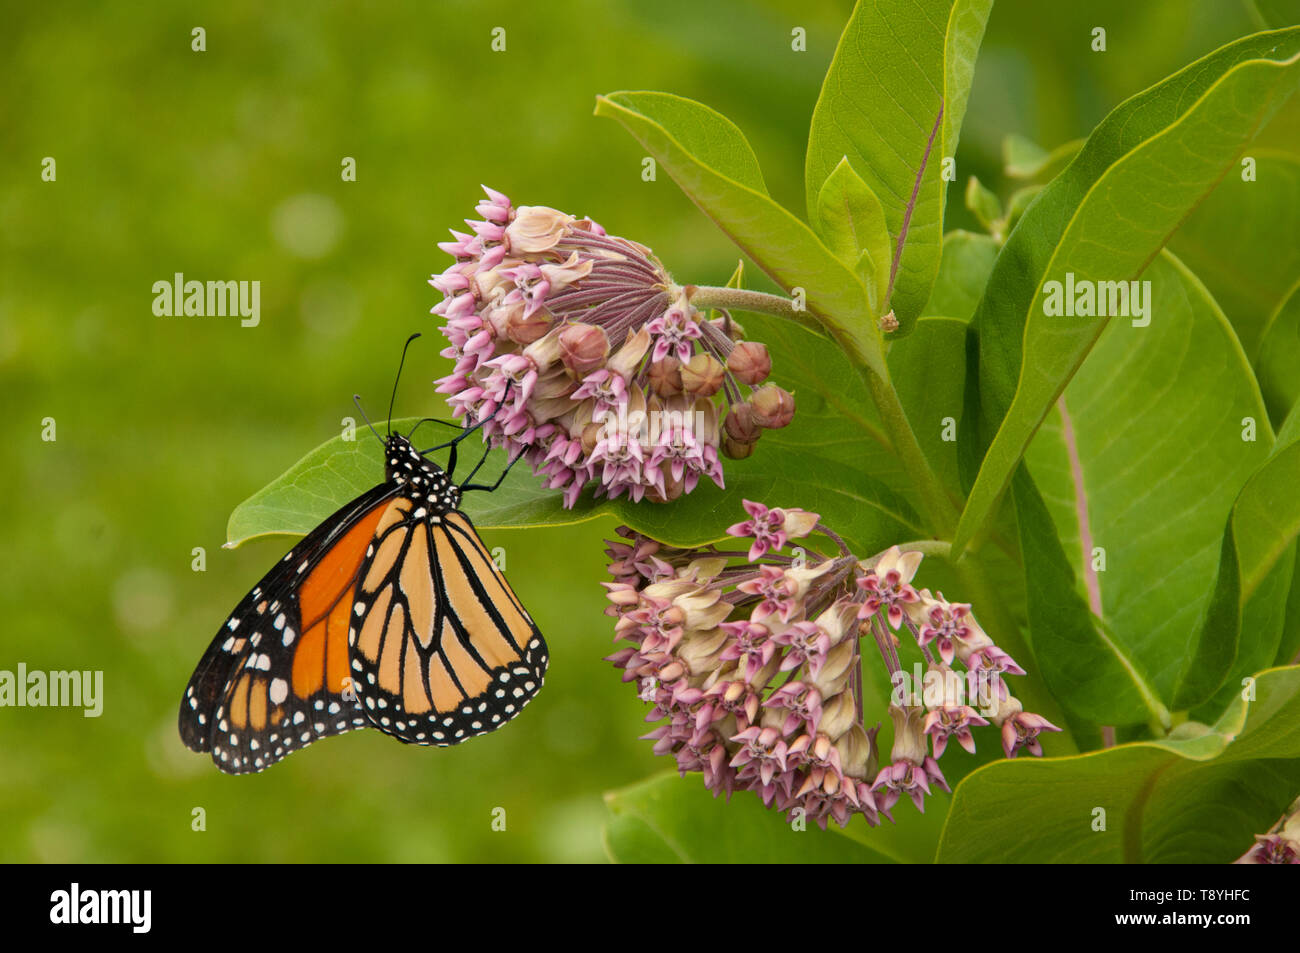 Monarch butterfly (Danaus plexippus) on Milkweed plant (Asclepias syriaca), a latex producting toxic plant, both at the limit of their northern range  - Stock Image